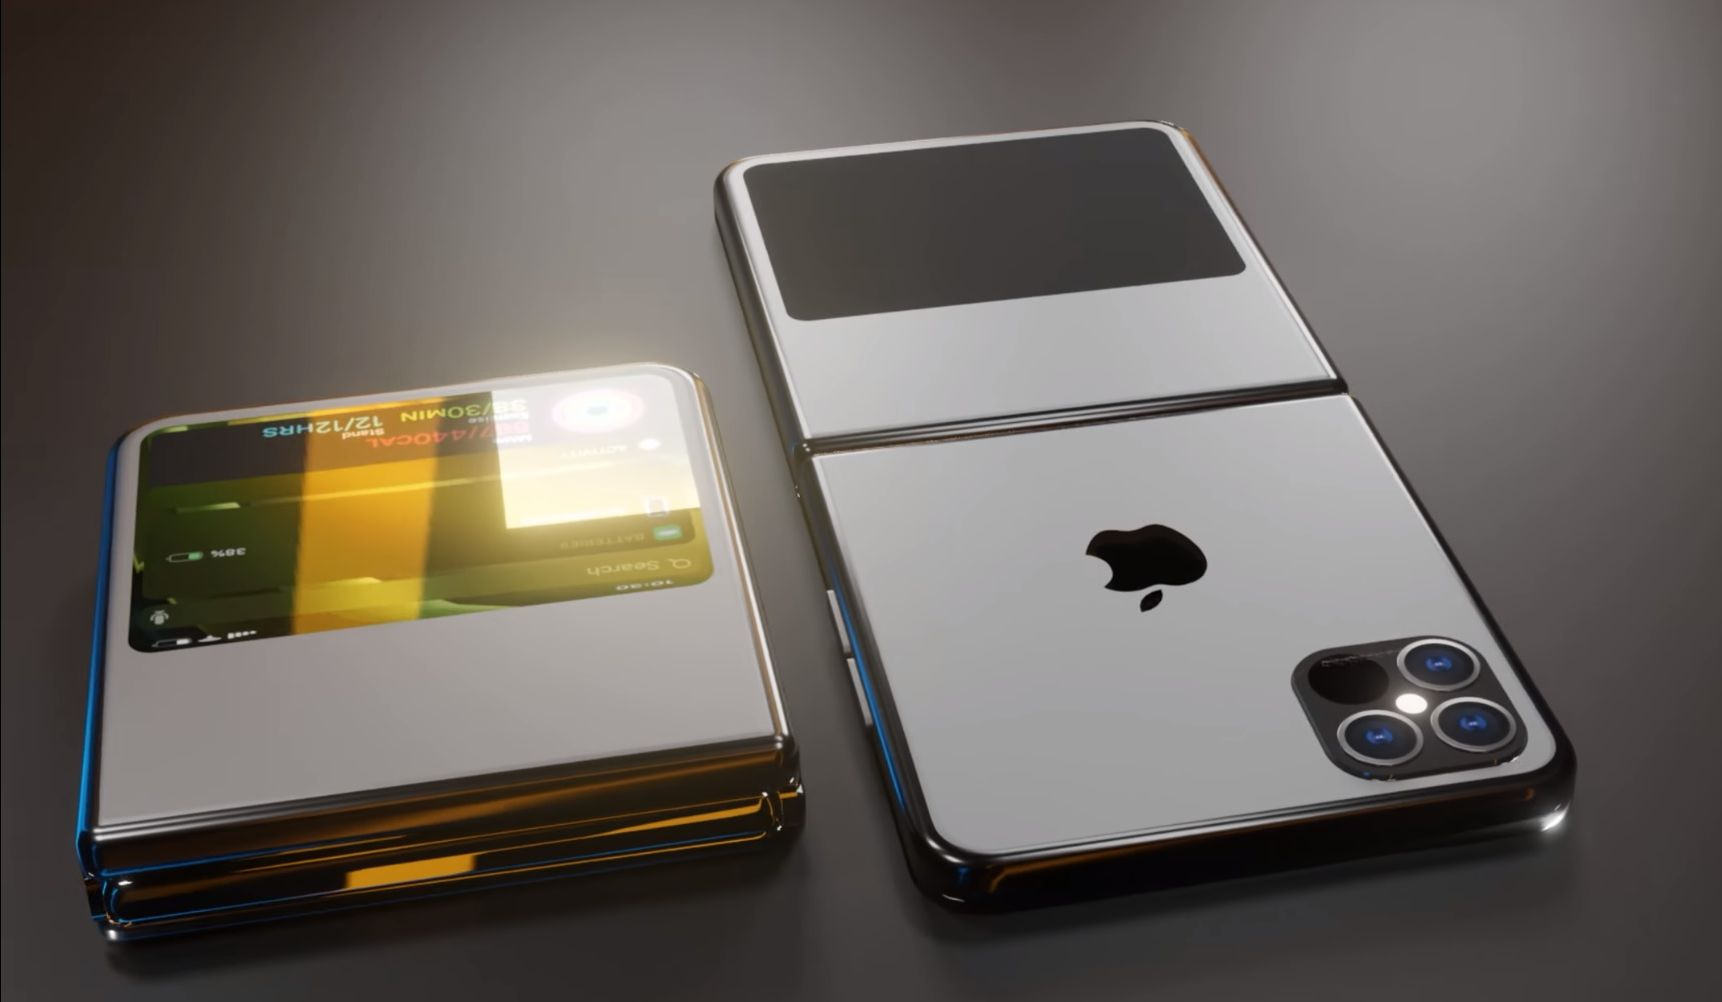 The Iphone Becomes A Flip Phone In This Iphone Flip Foldable Phone Concept Concept Phones